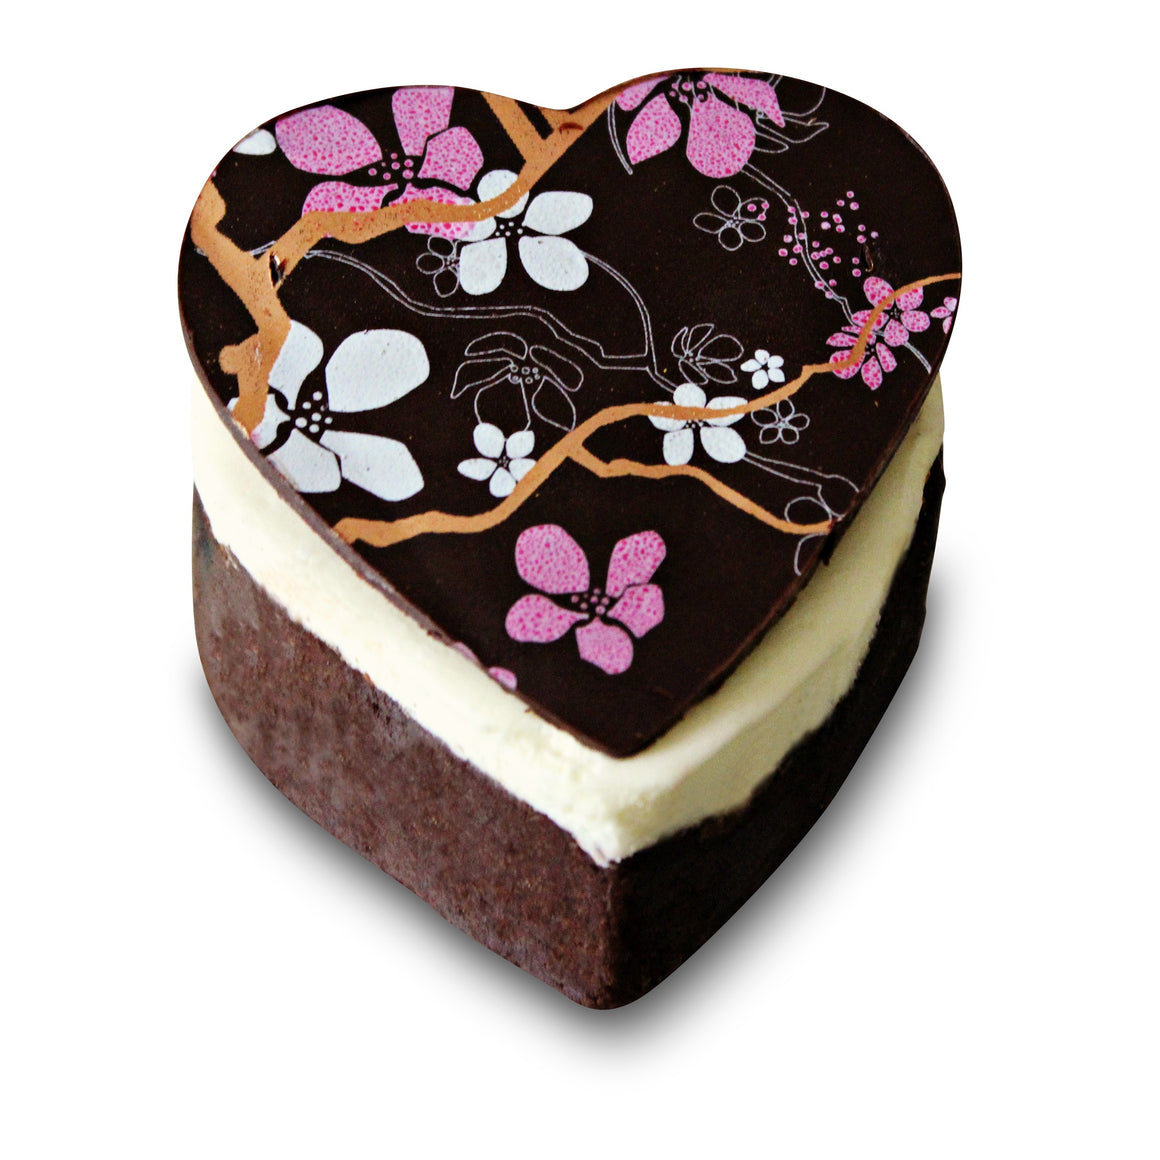 Cupid's Brownie Heart - Dello Mano -handmade